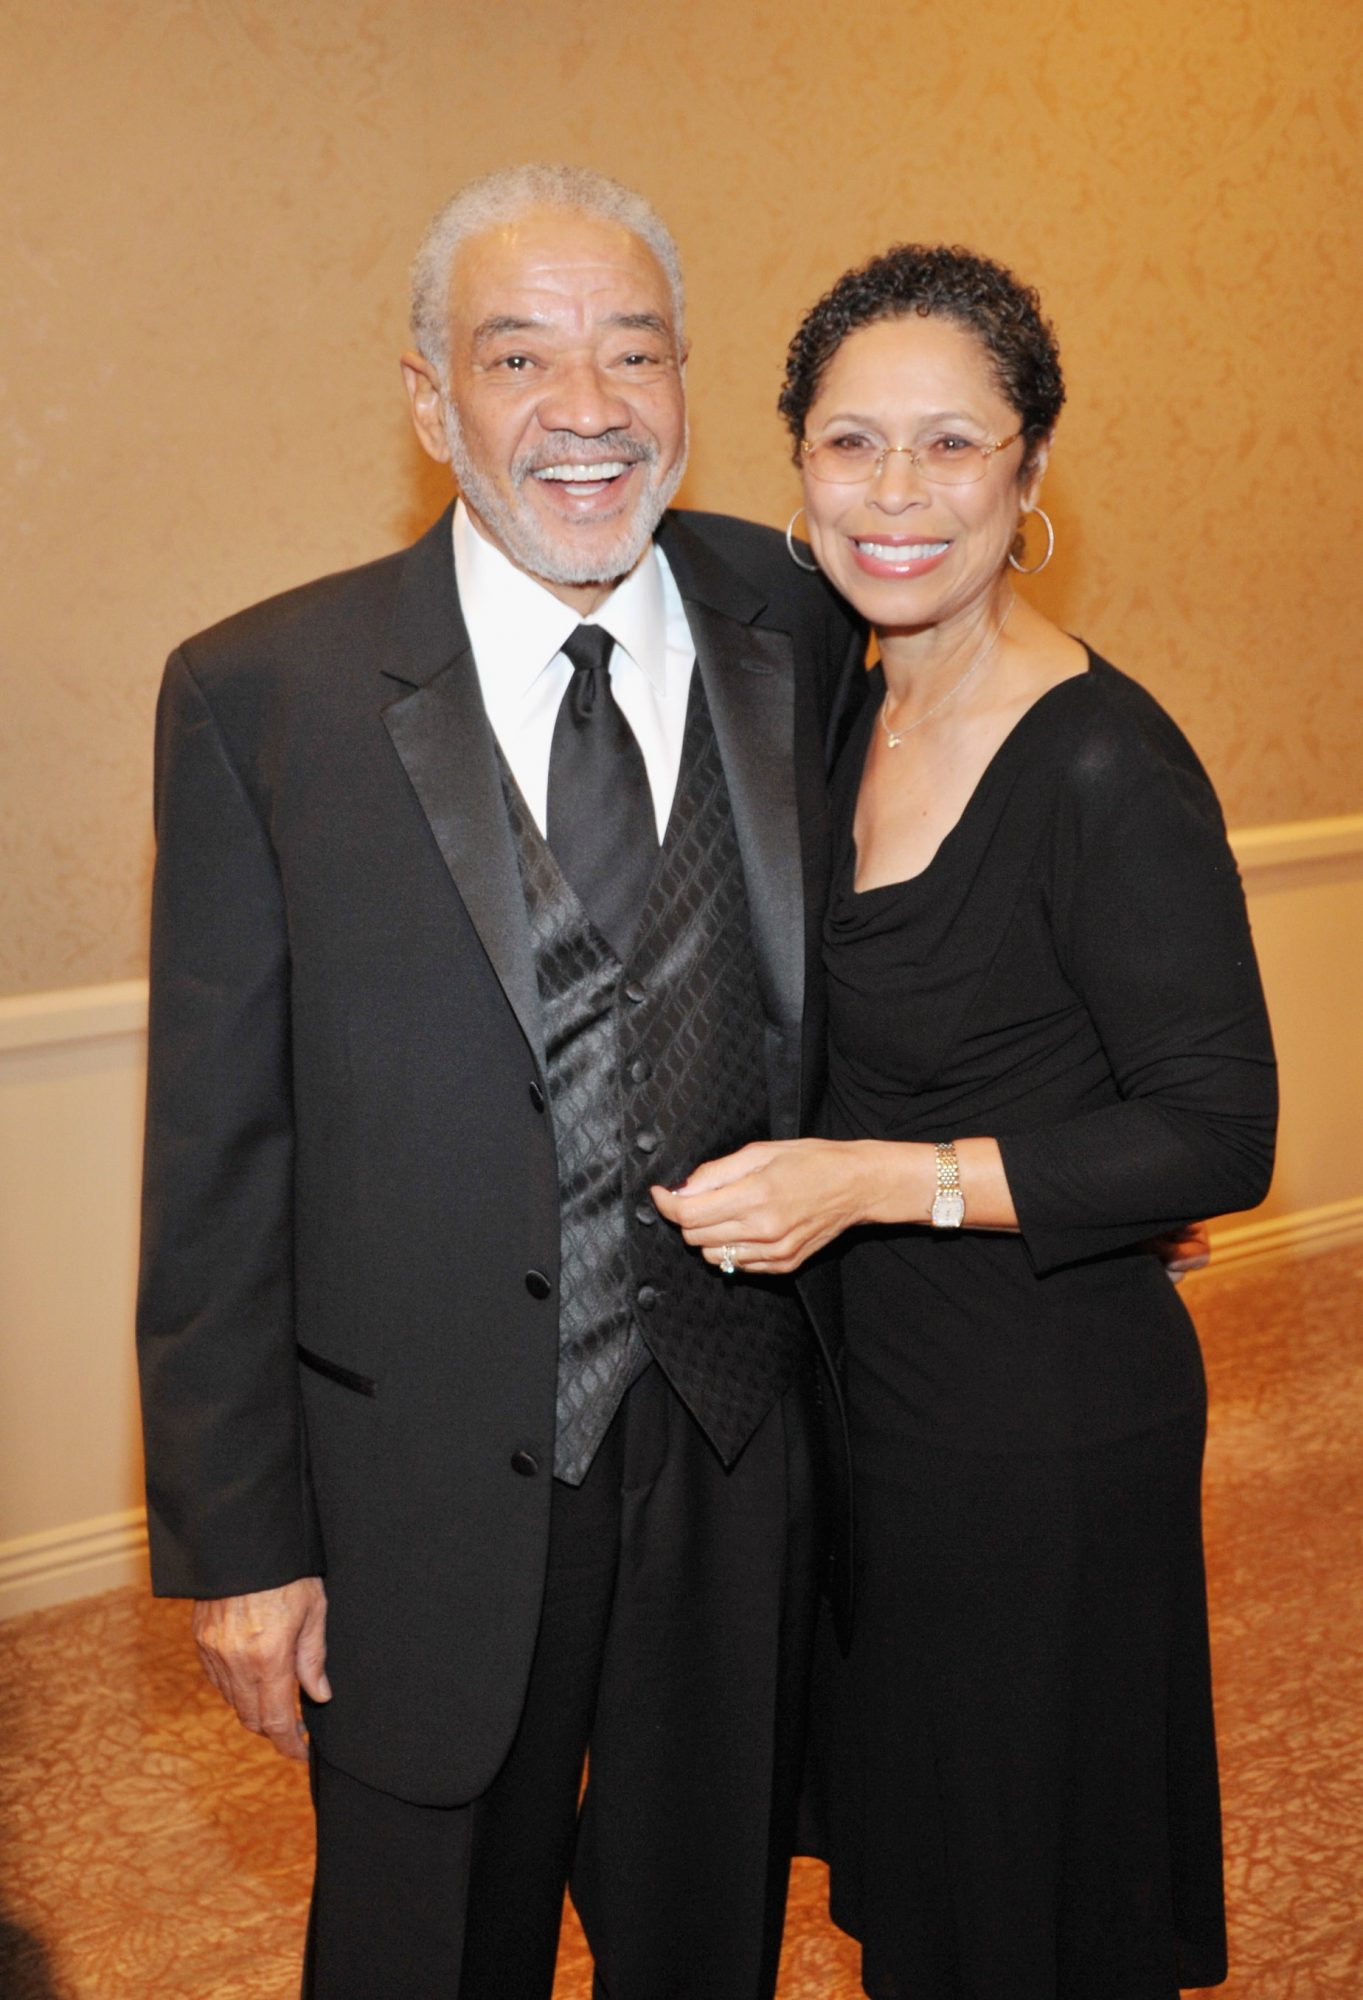 Bill and Marcia Withers